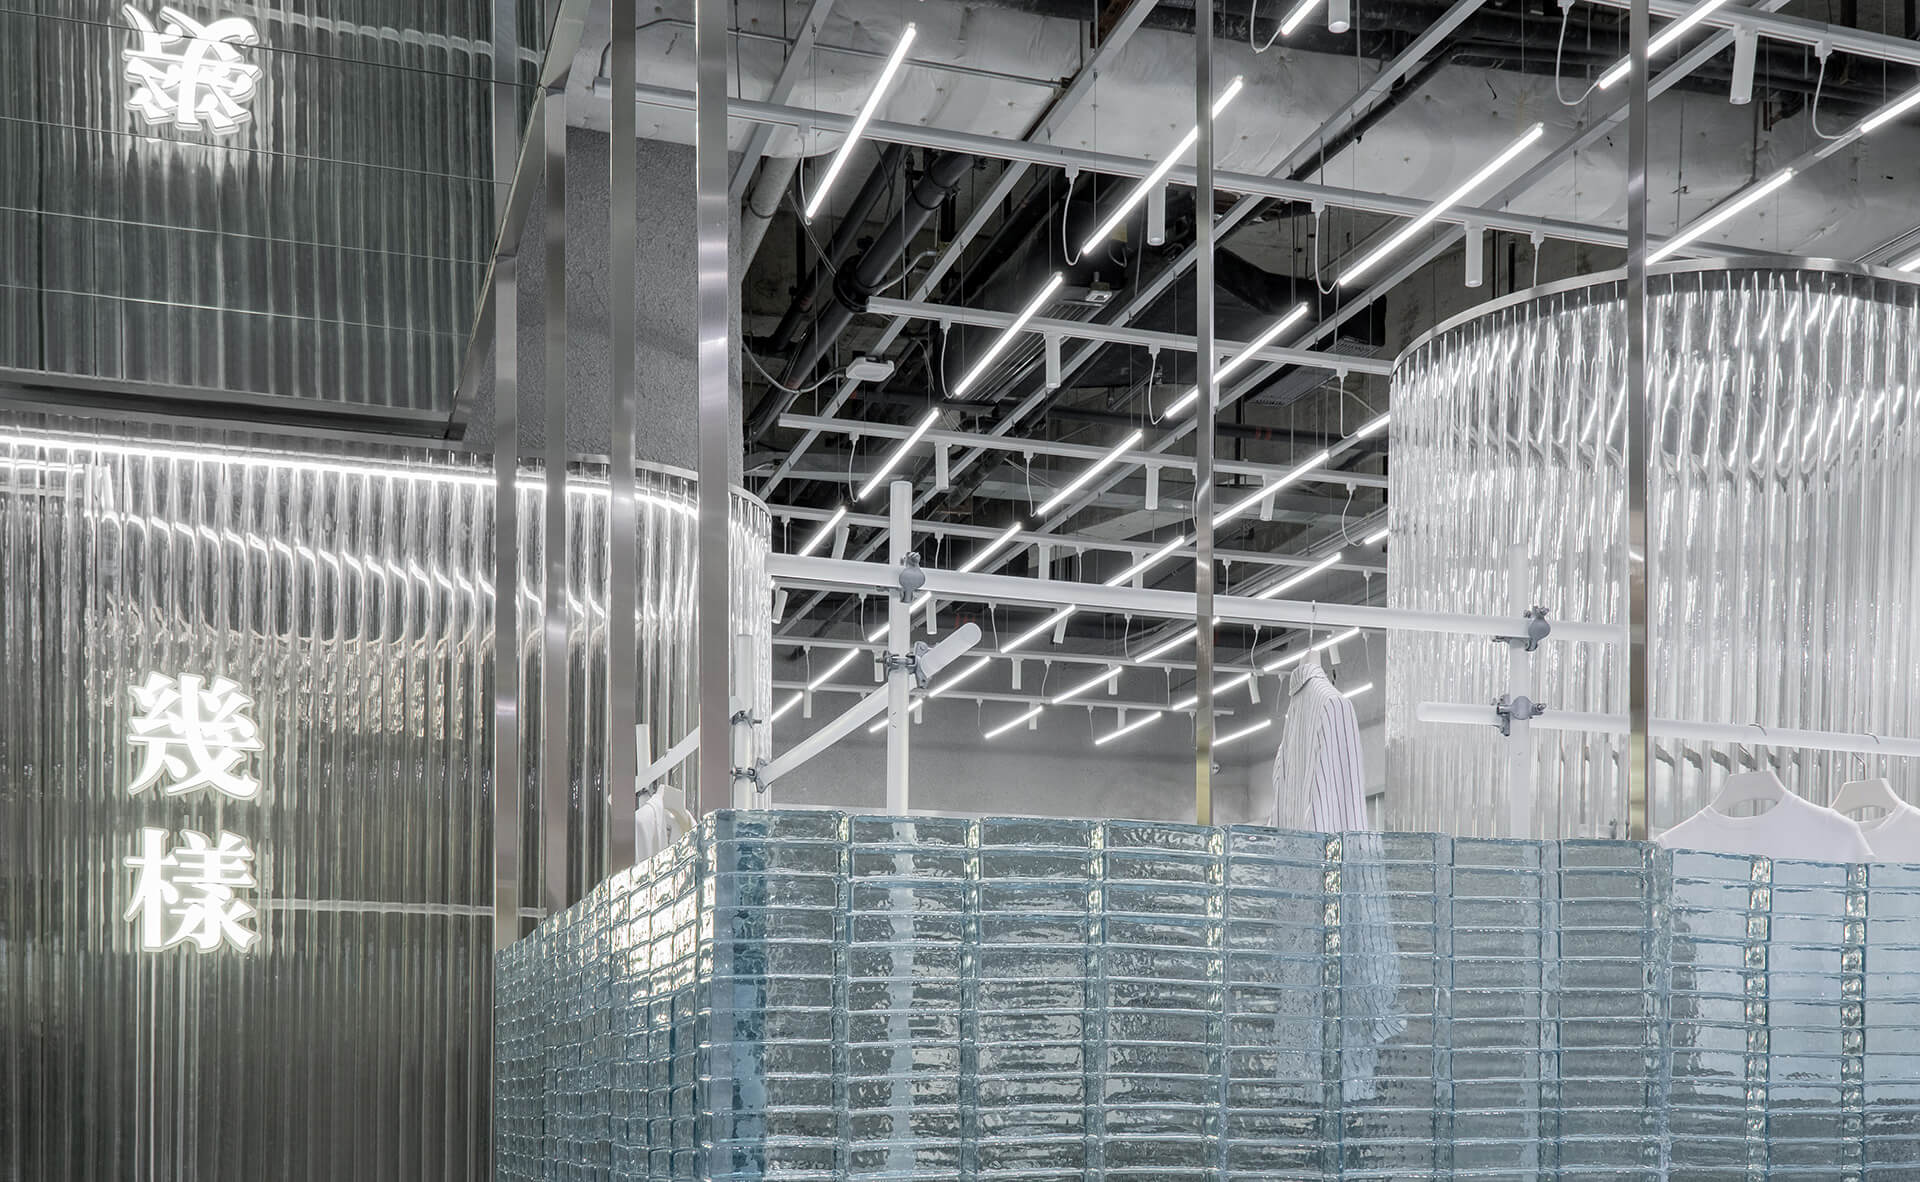 Exposed grid ceiling and half glass brick walls forming the interiors | Geijoeng Concept Store | Studio 10 | STIRworld